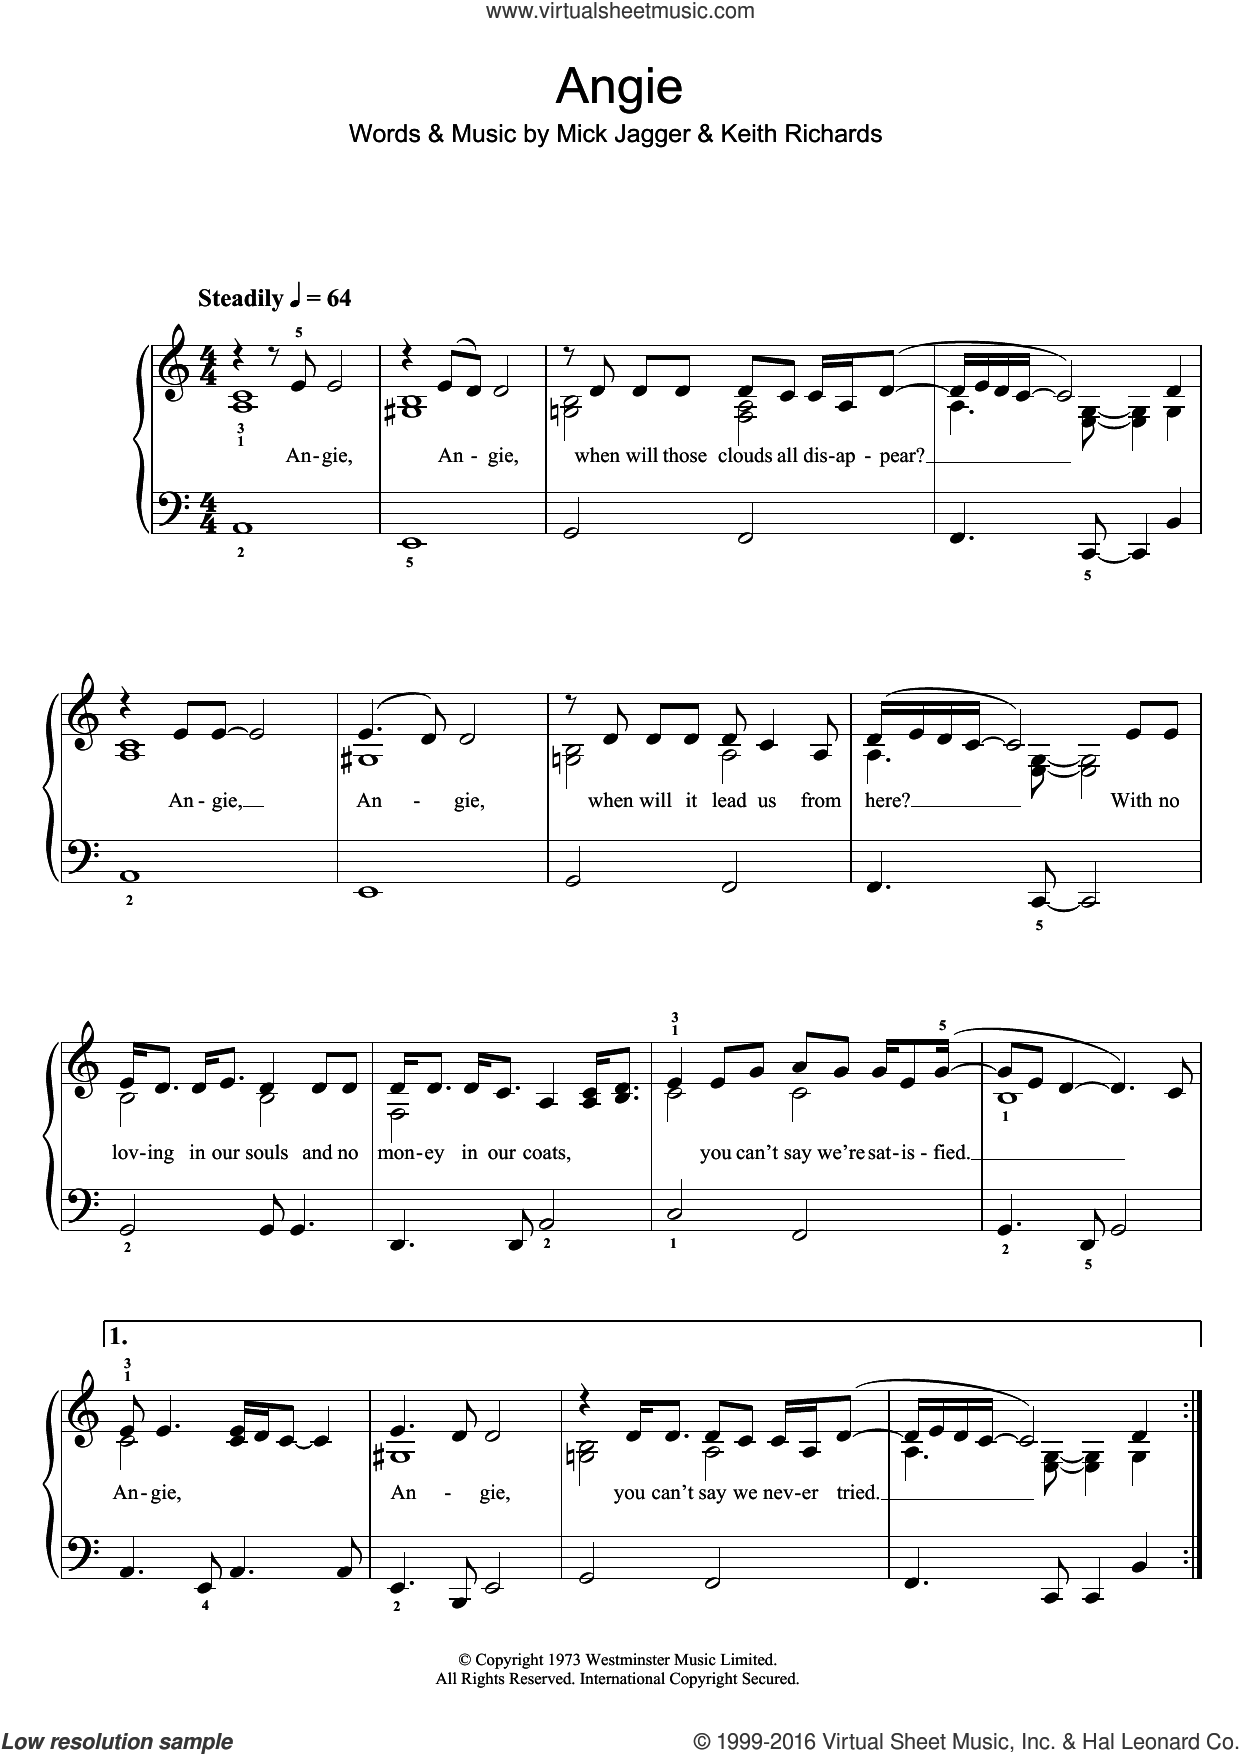 Angie sheet music for piano solo (beginners) by The Rolling Stones, Keith Richards and Mick Jagger, beginner piano (beginners)